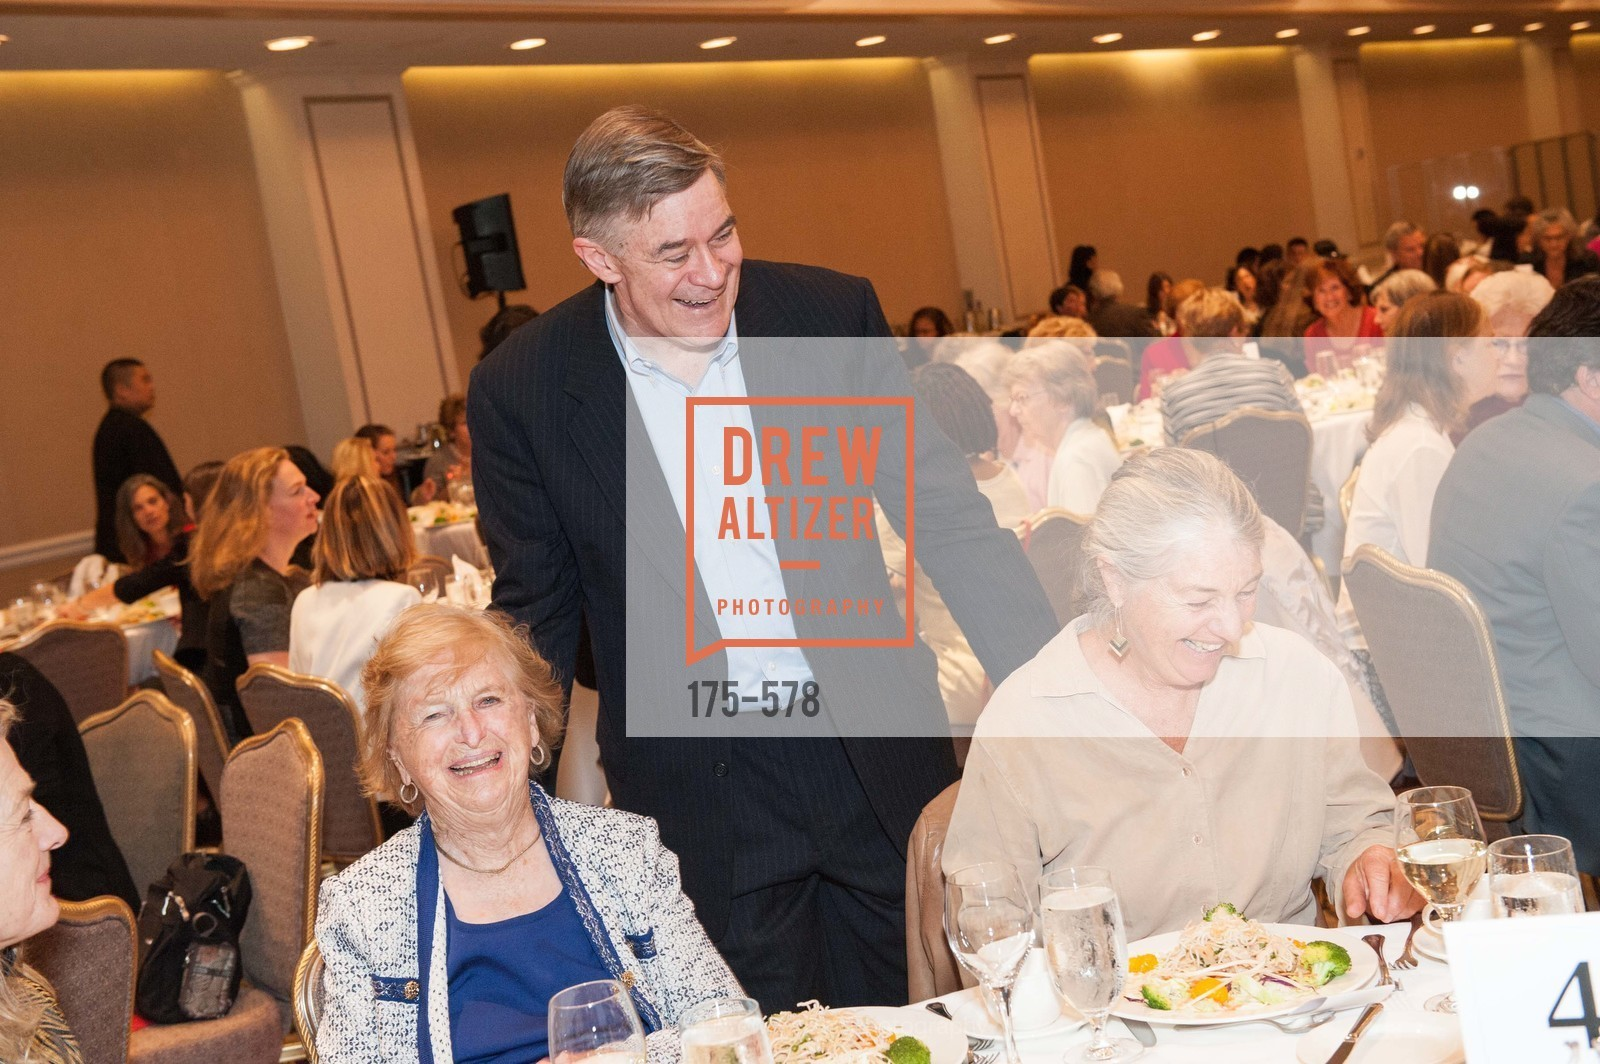 Liz McCarthy, Dan MacDonald, Sheila O'Brien, HOMELESS PRENATAL Annual Luncheon 2014, US, October 1st, 2014,Drew Altizer, Drew Altizer Photography, full-service agency, private events, San Francisco photographer, photographer california